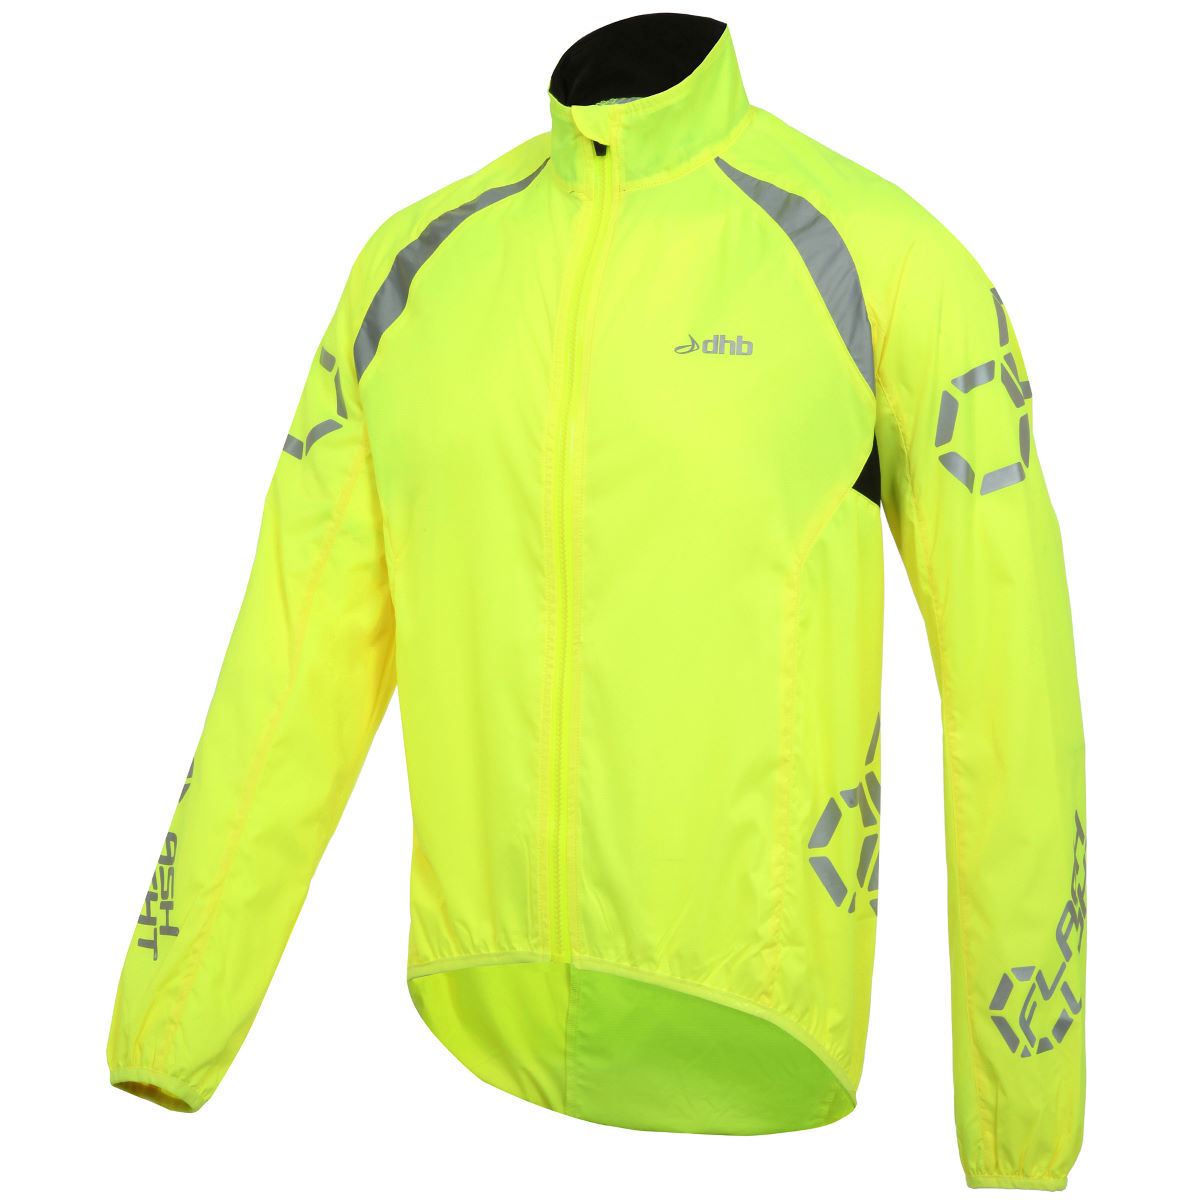 Veste dhb Flashlight (coupe-vent) - XL Fluro Yellow Coupe-vents vélo